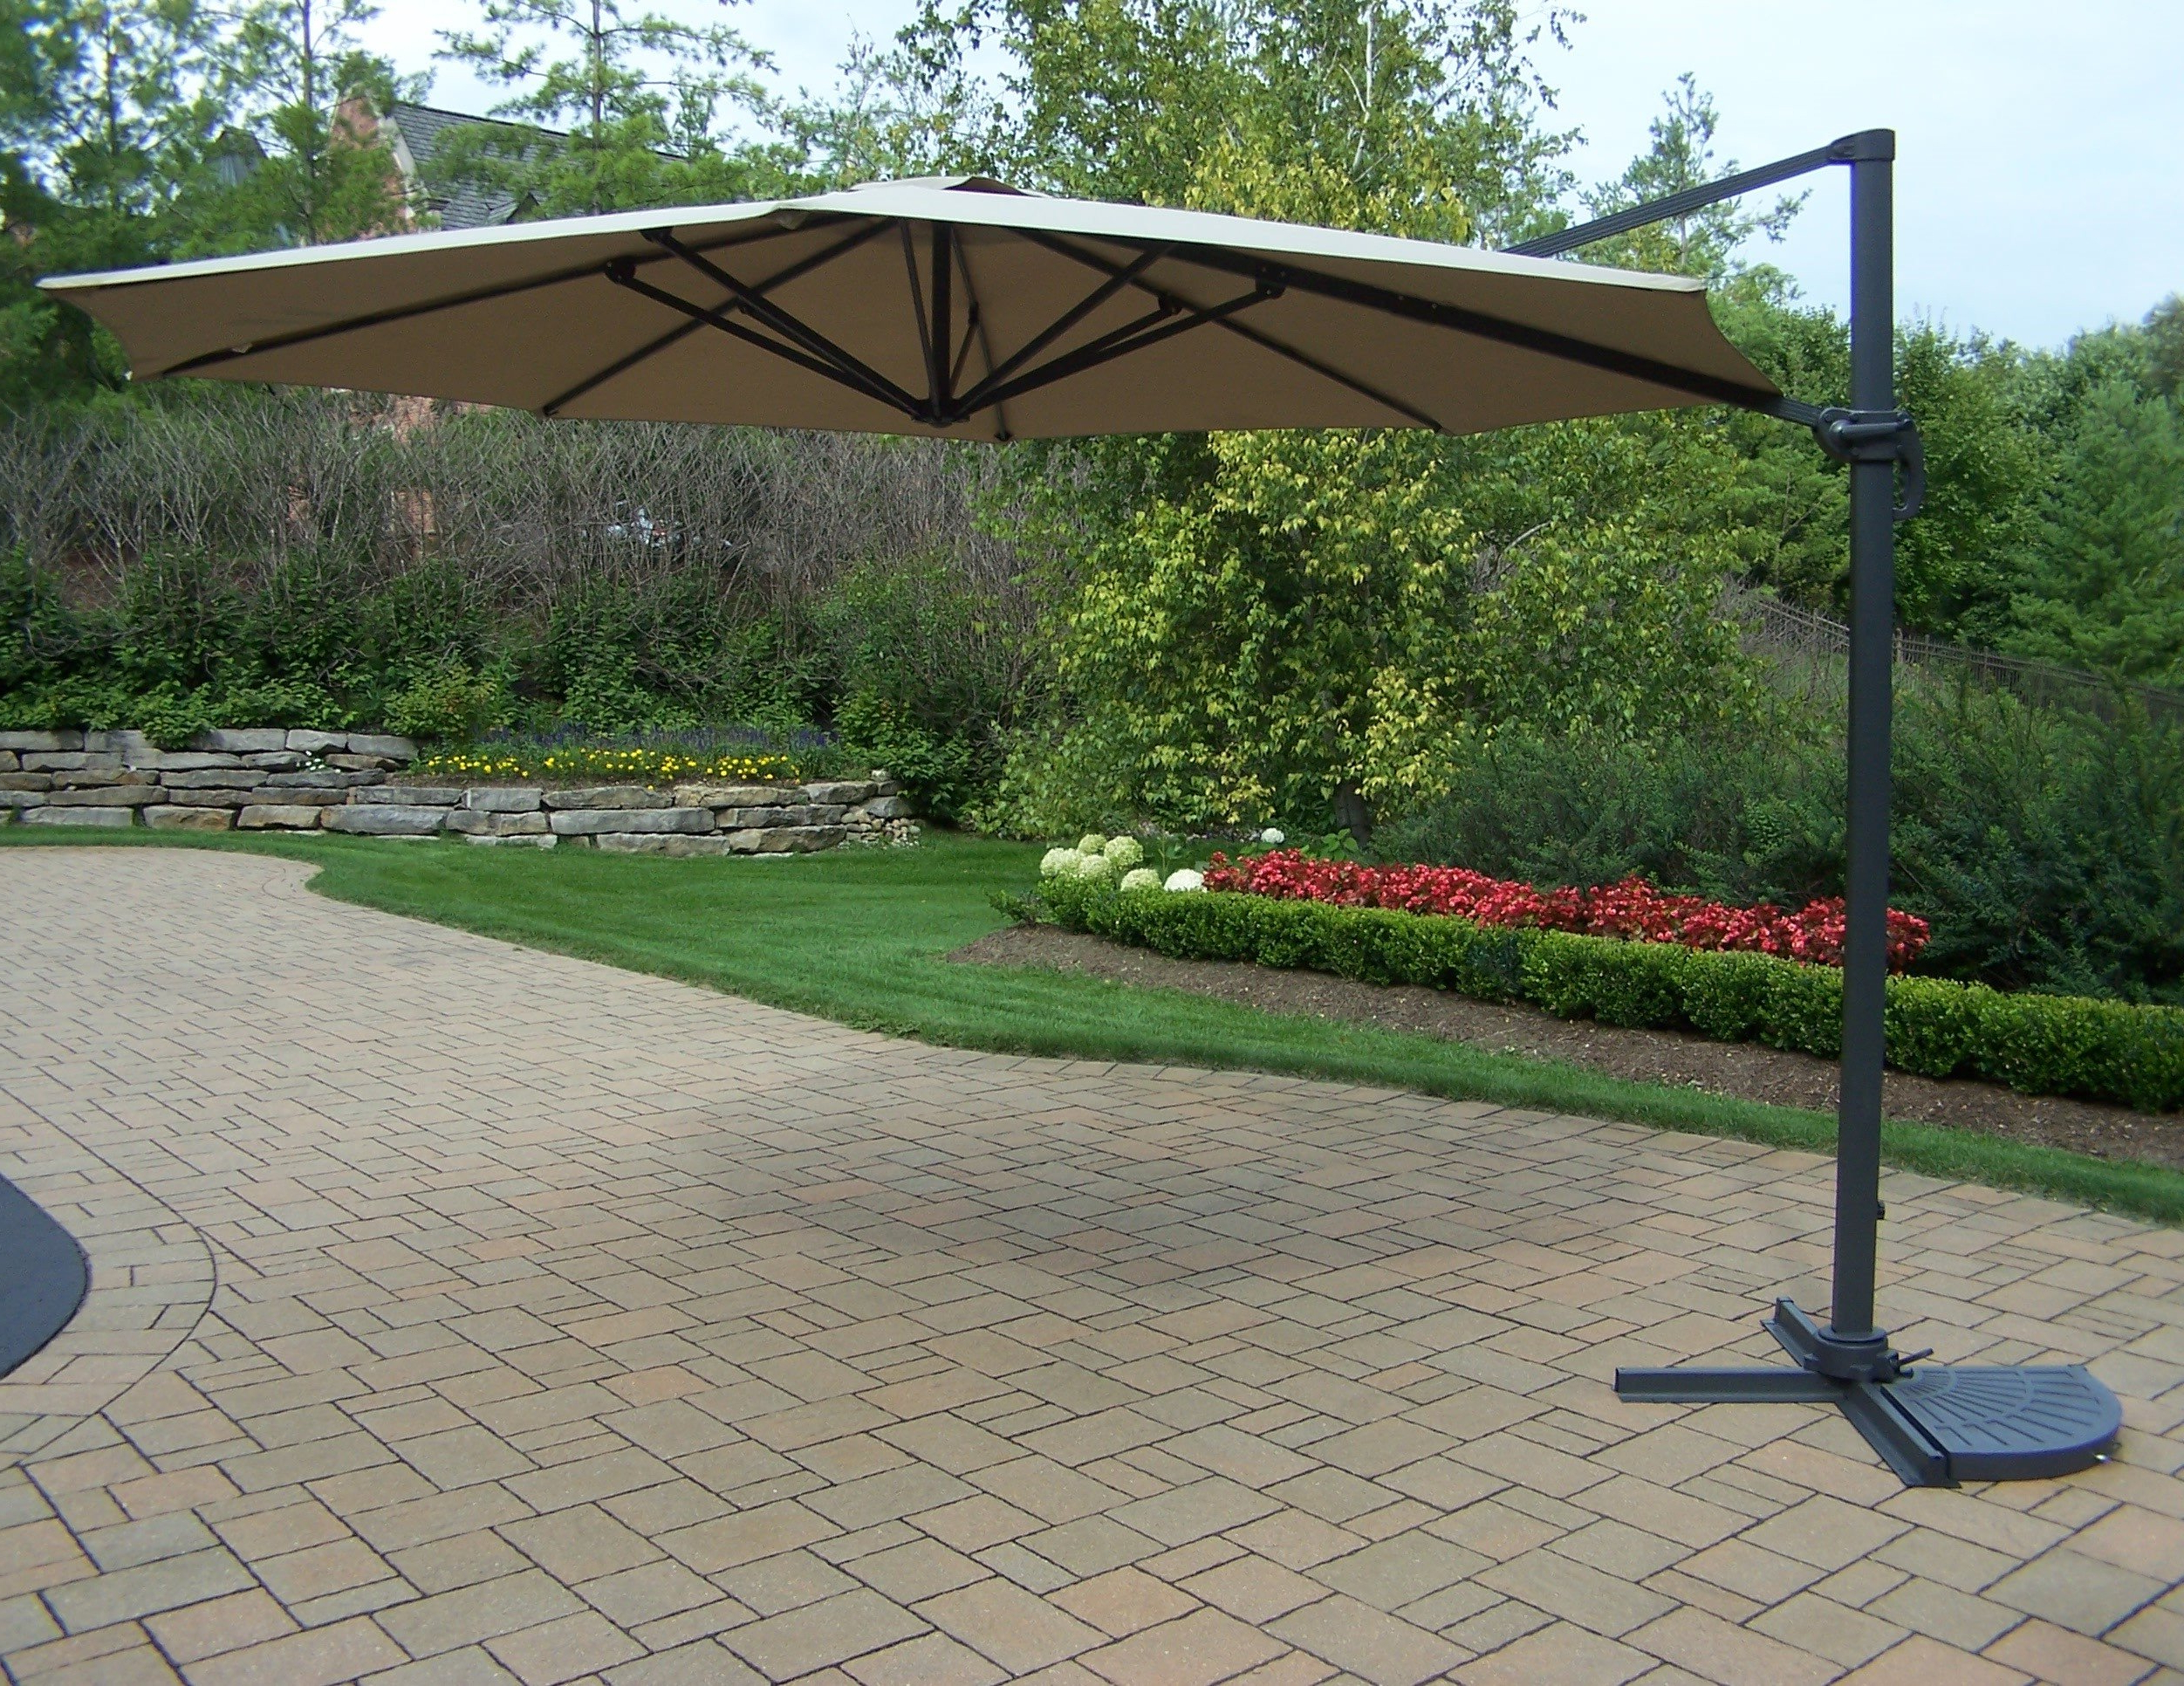 Well Known 11' Cantilever Umbrella Intended For Elaina Cantilever Umbrellas (View 3 of 20)